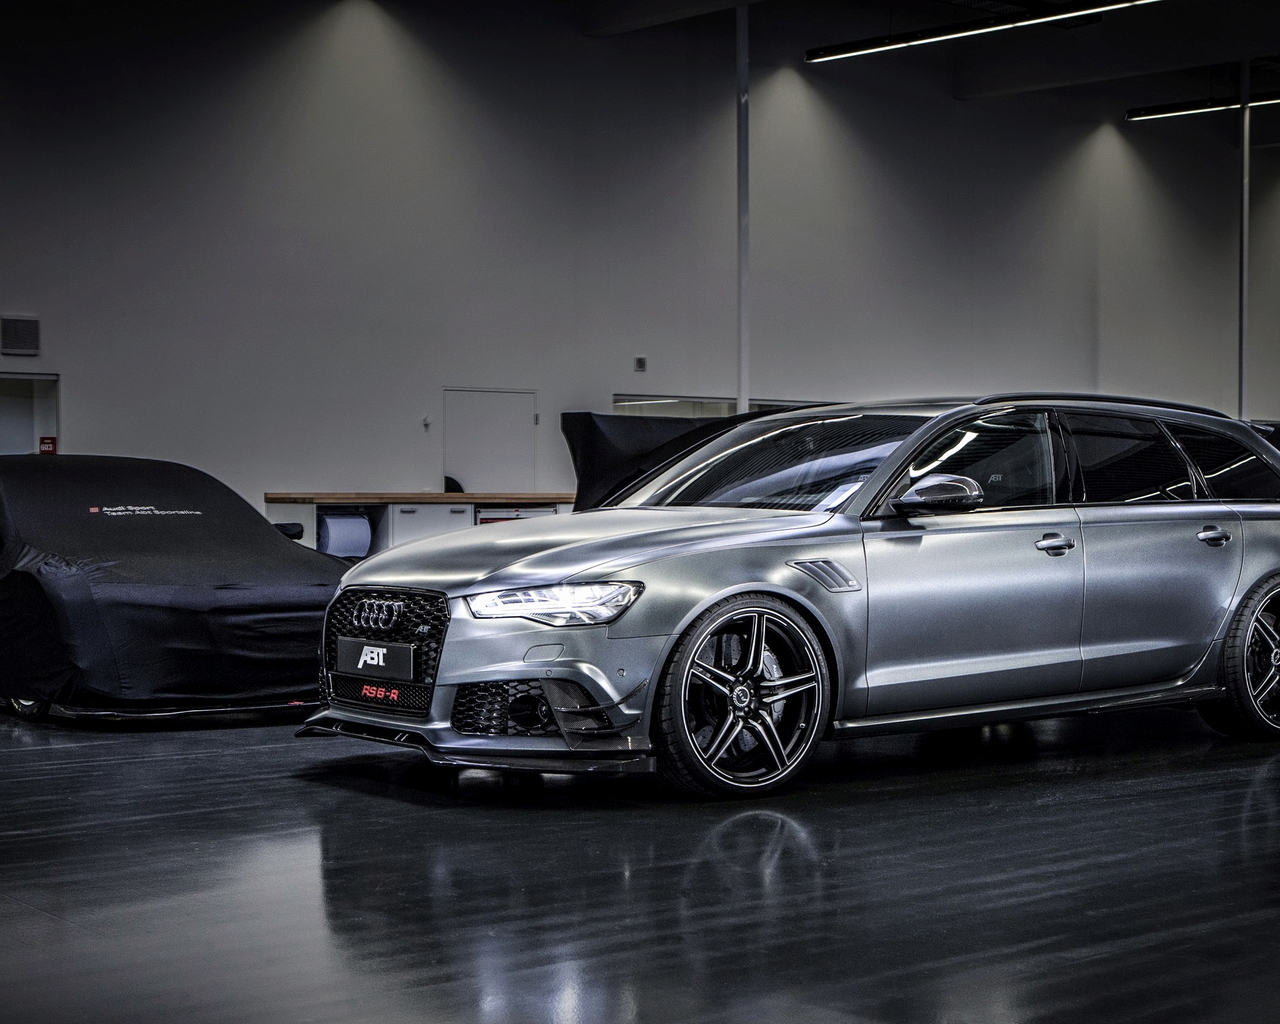 Audi RS6 R ABT for 1280 x 1024 resolution